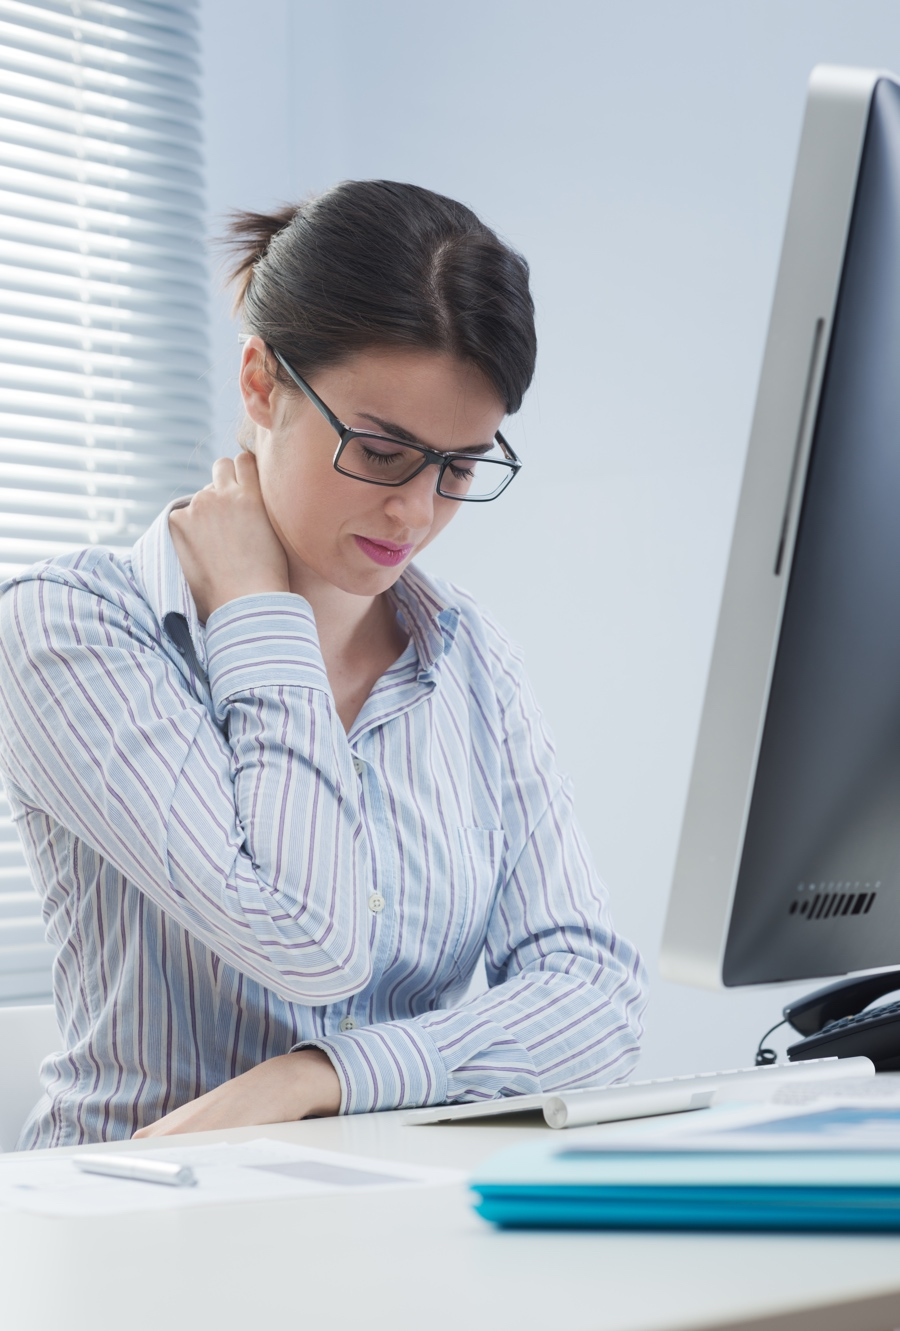 DSE Assessment helps to reduce neck pain